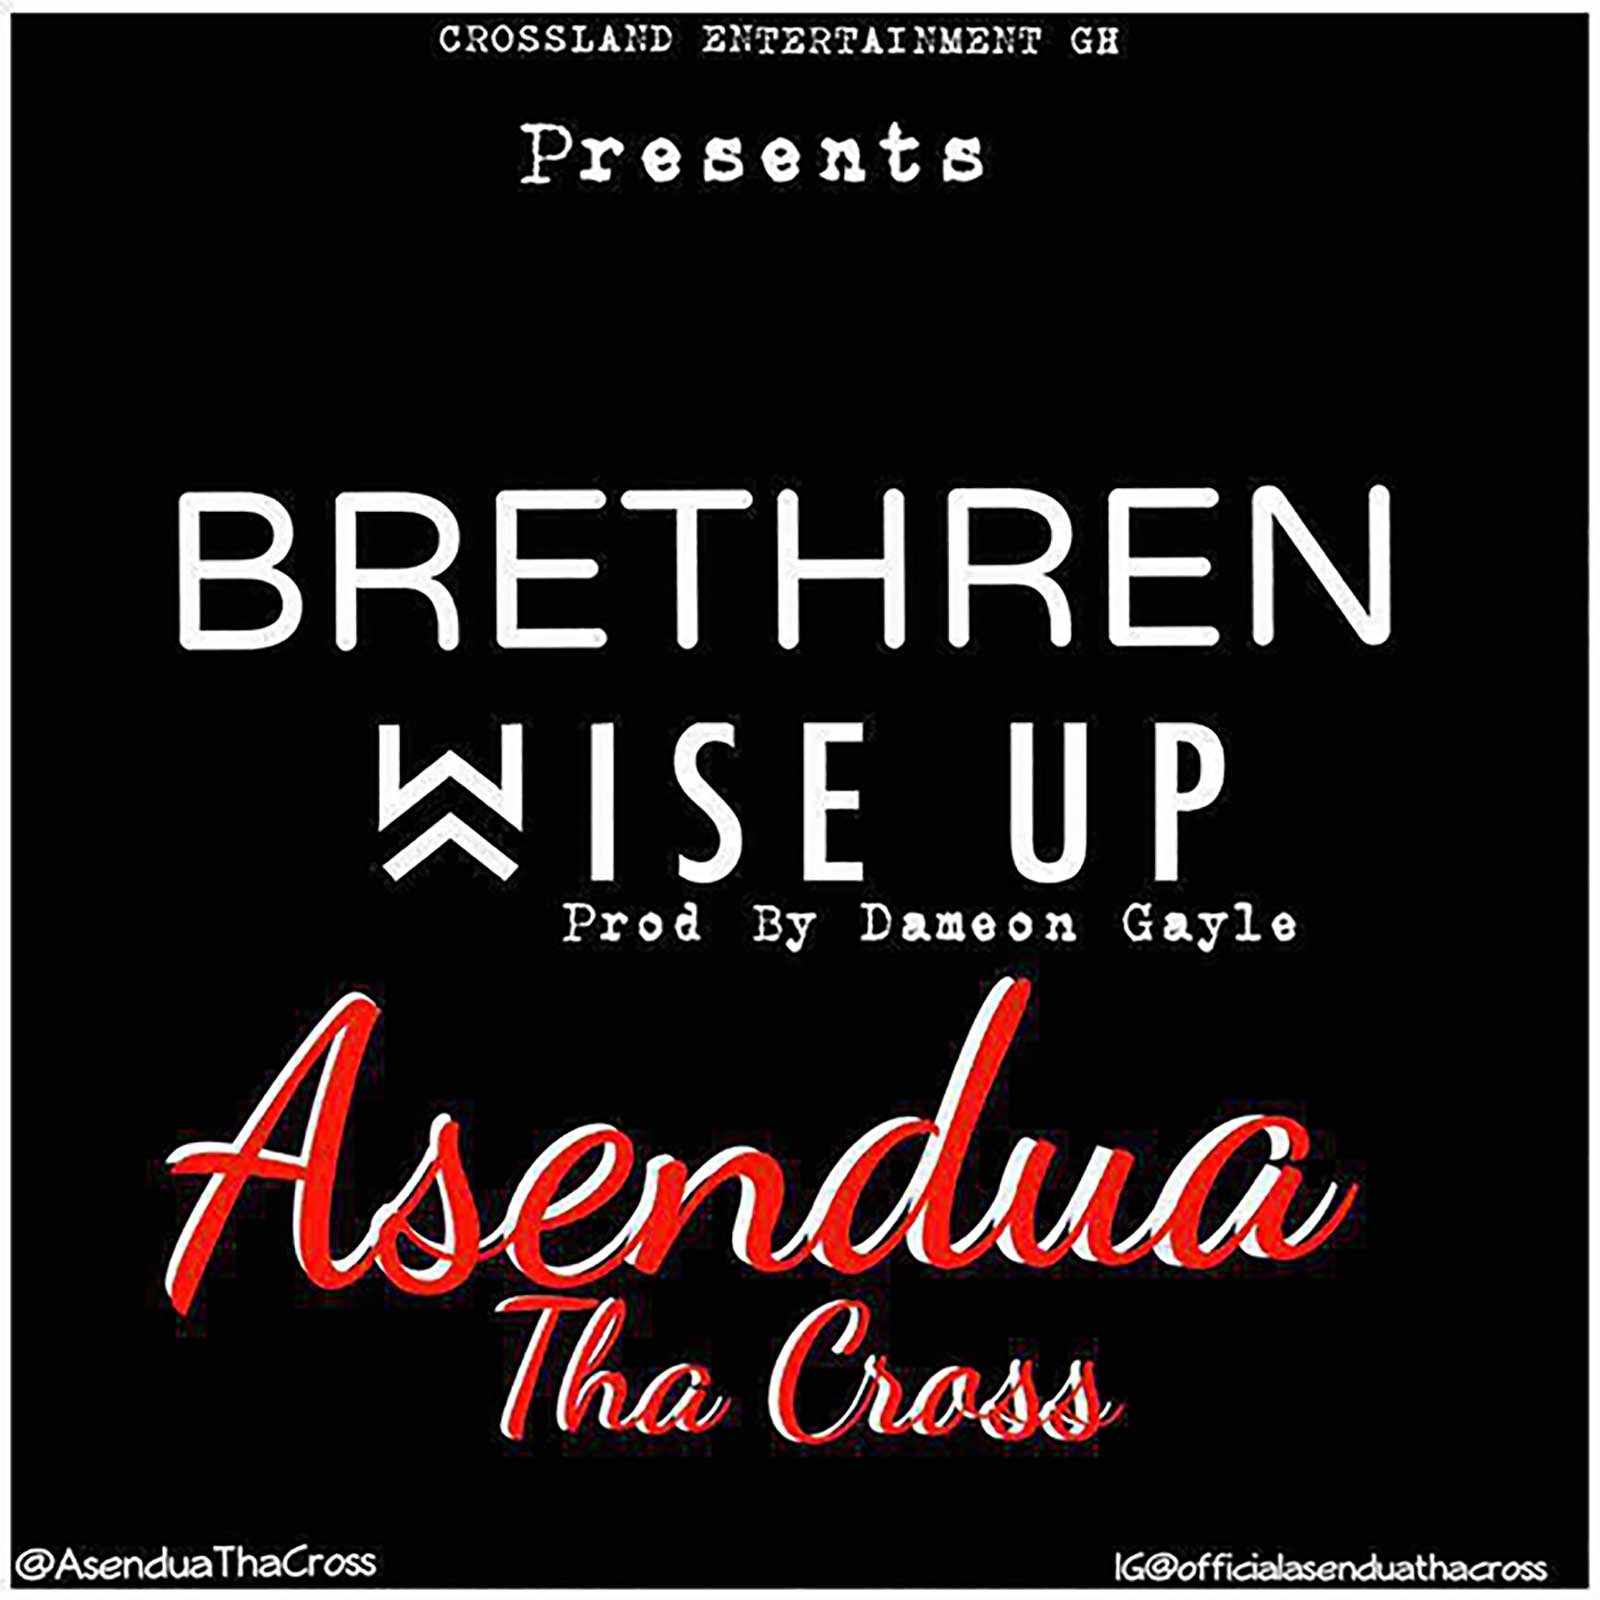 Brethren Wise Up by Asendua Tha Cross